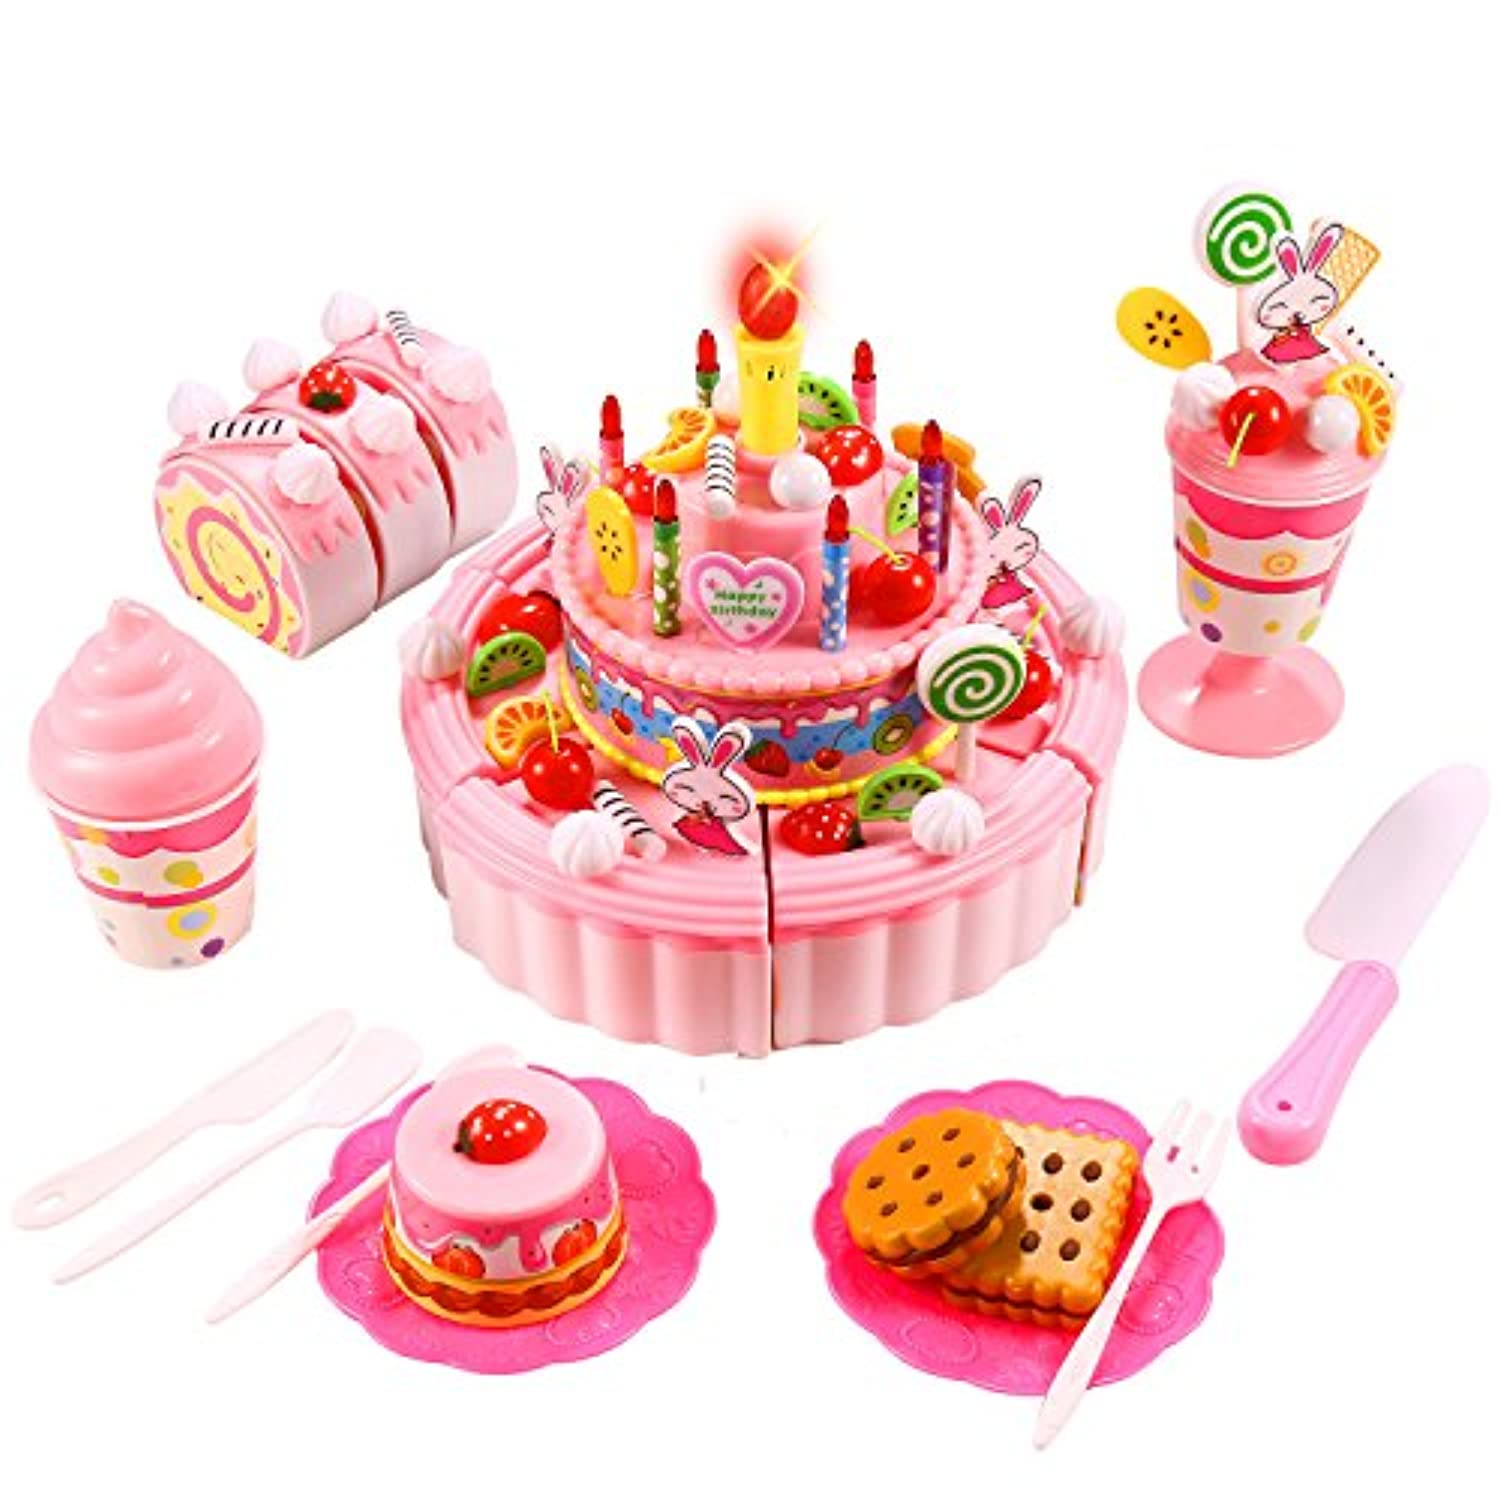 (3-layer/Pink) - Arshiner Triple-Layer Light & Birthday Song Party Cake Desert Kids Pretend Play Food Toy Set (Pink) (US STOCK)